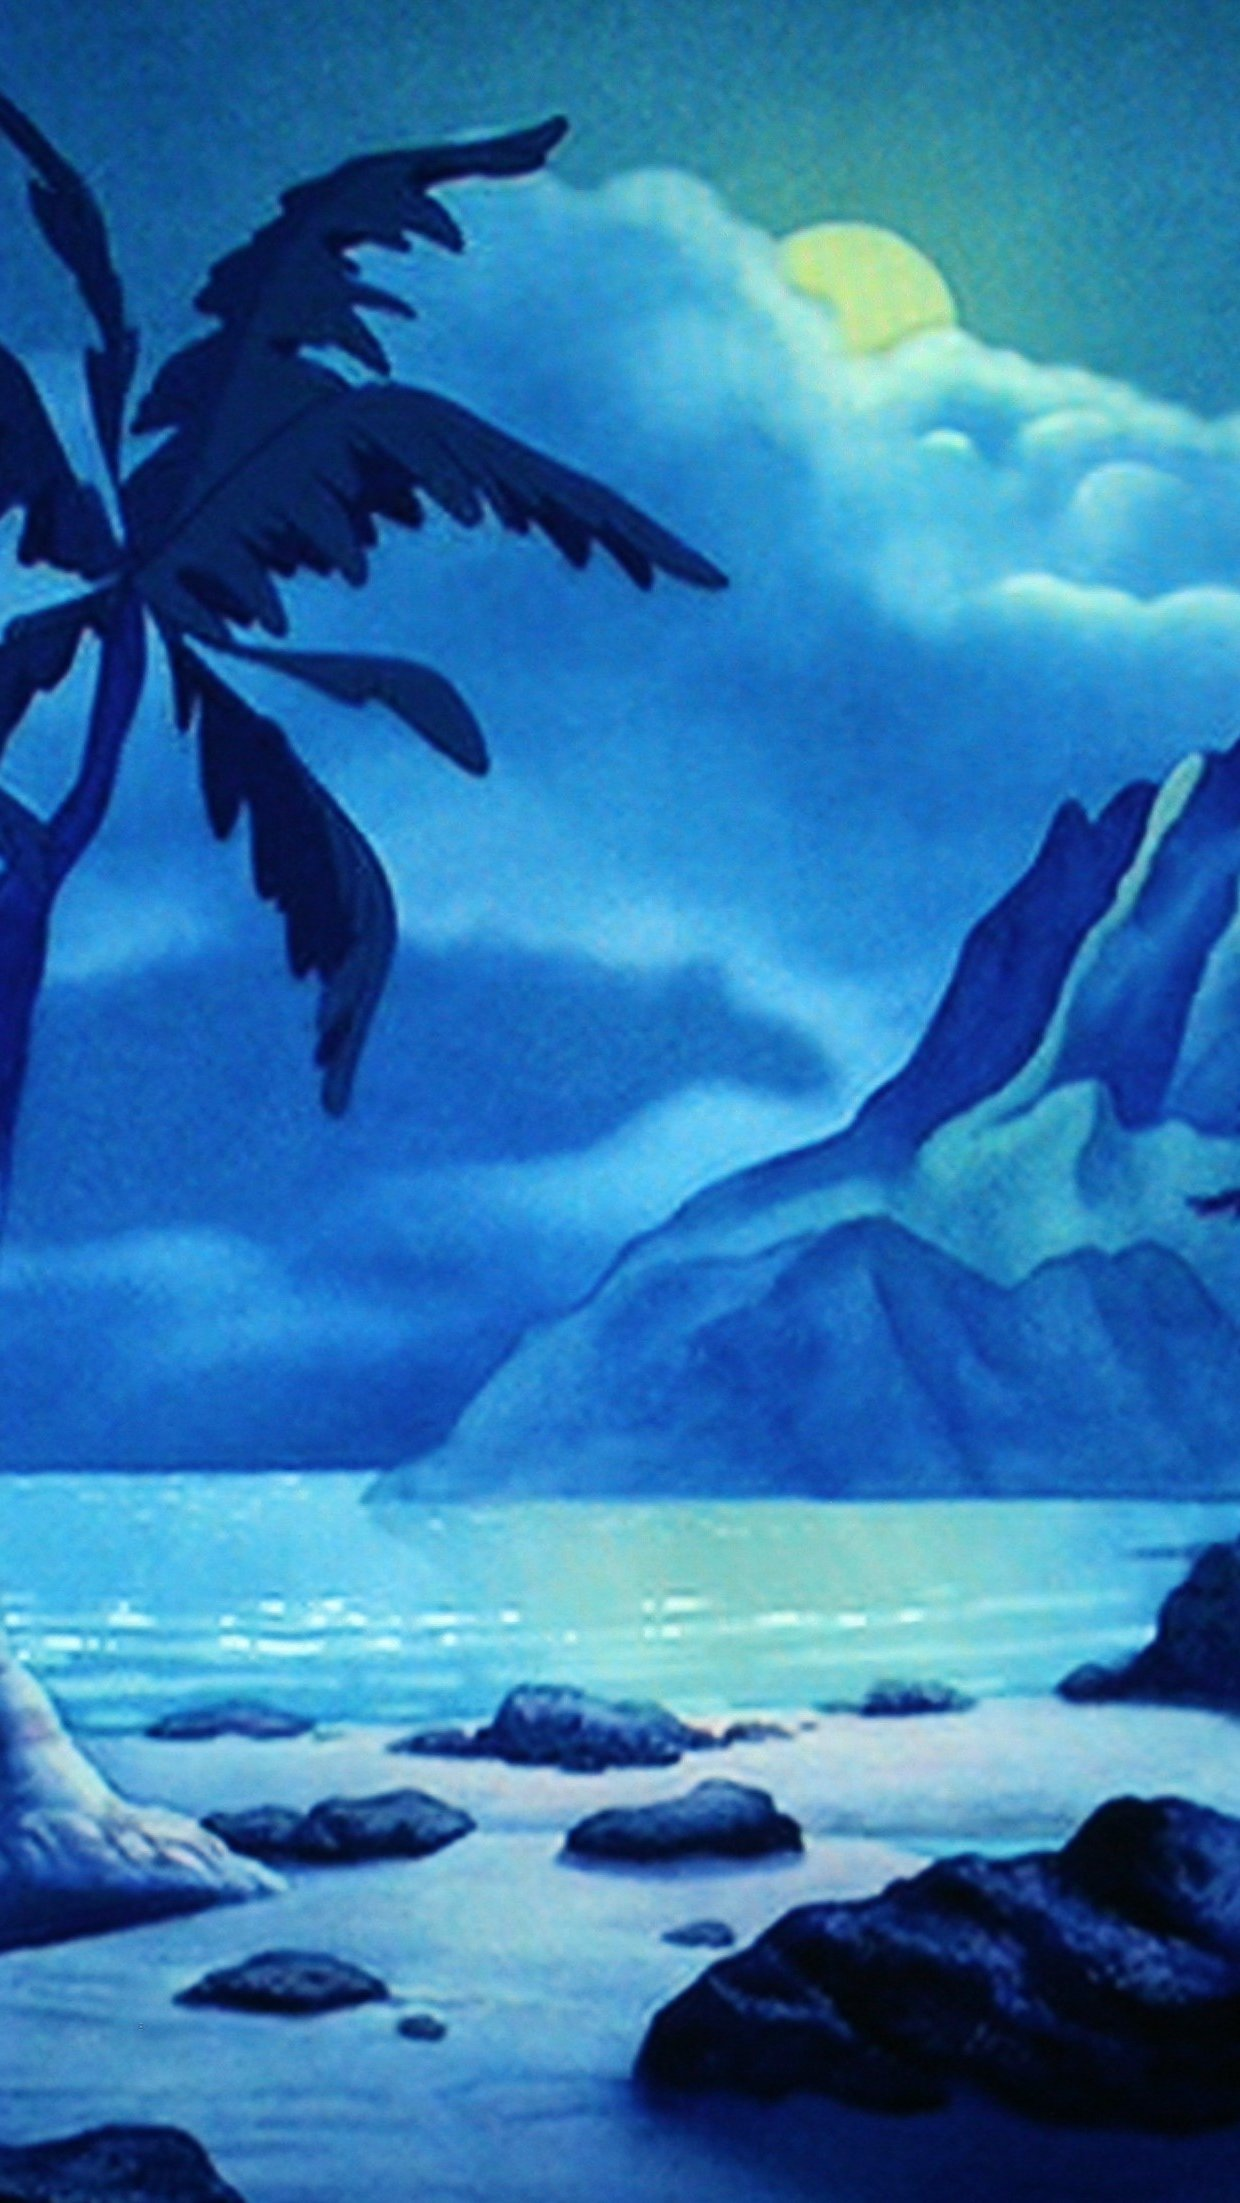 Wallpaper Stage Beach of Lilo and Stitch Vertical